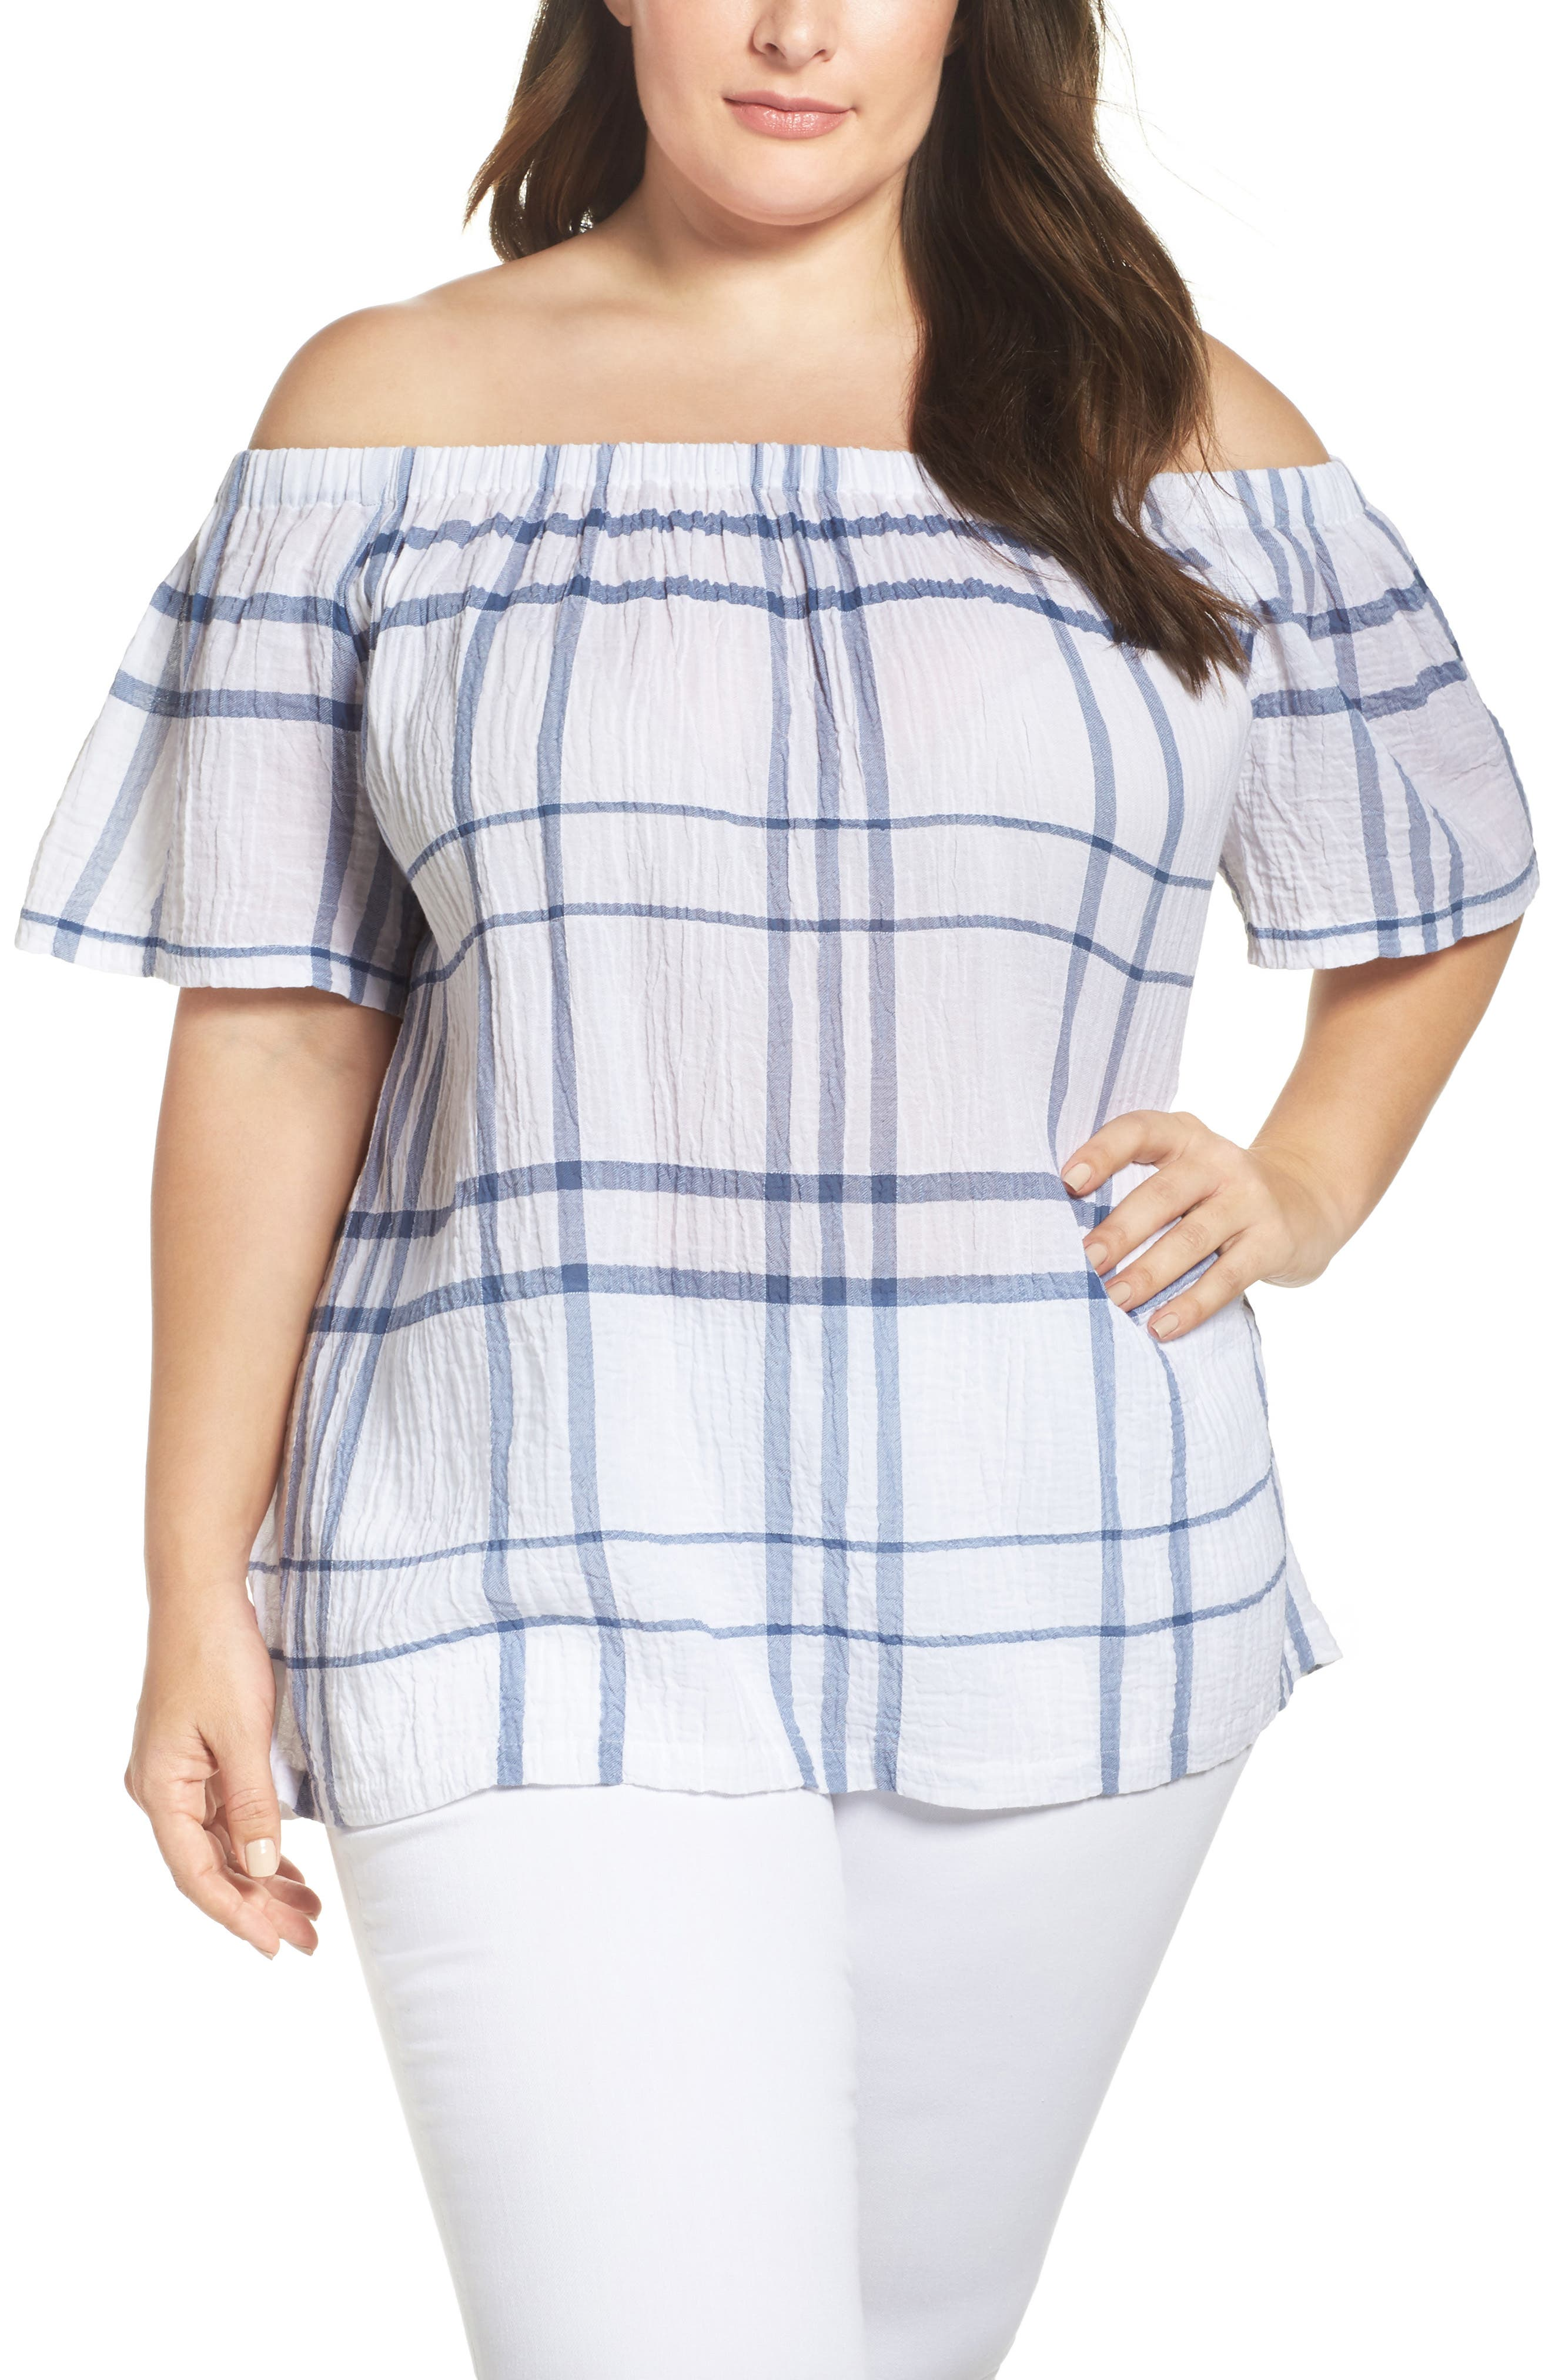 Vince Camuto Timeless Plaid Off the Shoulder Blouse,                             Main thumbnail 1, color,                             400